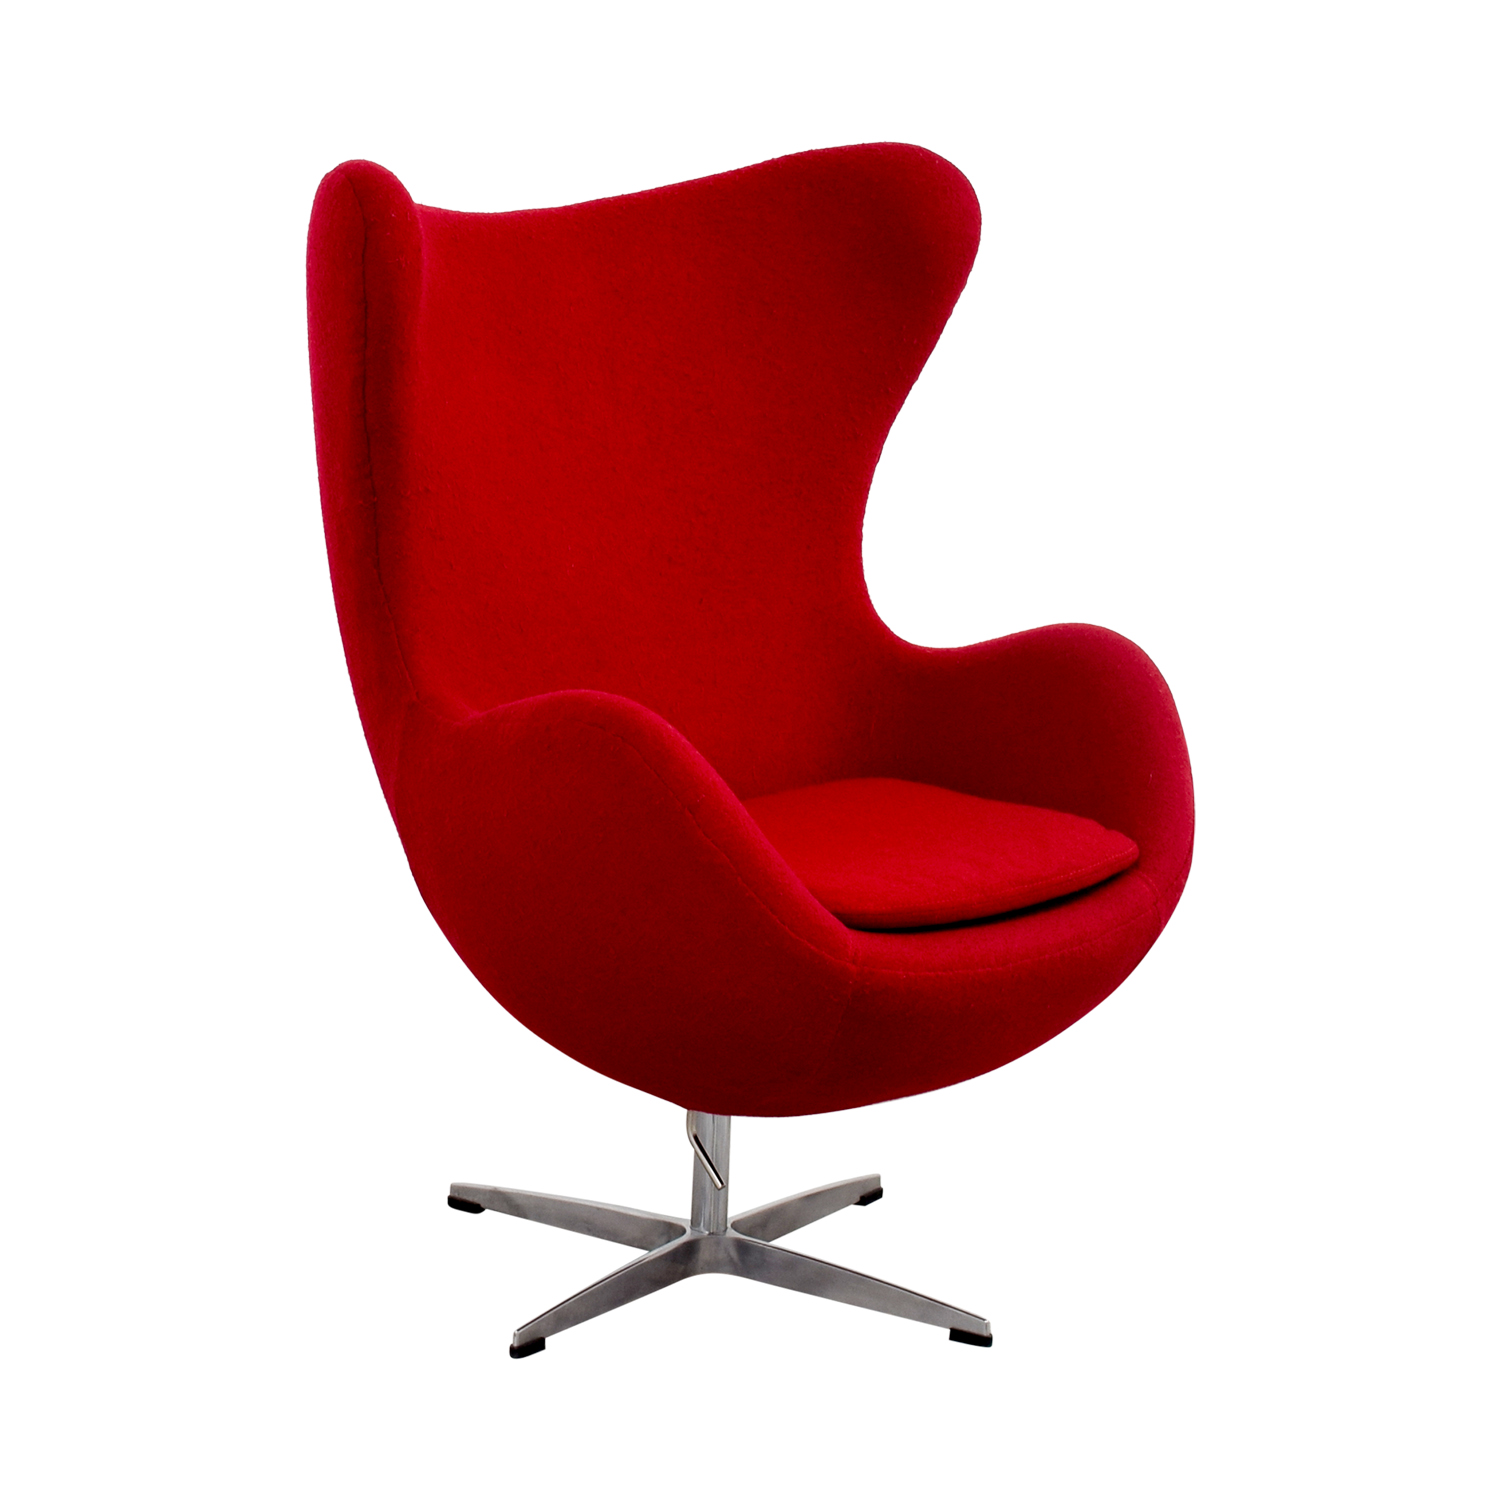 Used Egg Chair 72 Off Red And Chrome Egg Chair Chairs